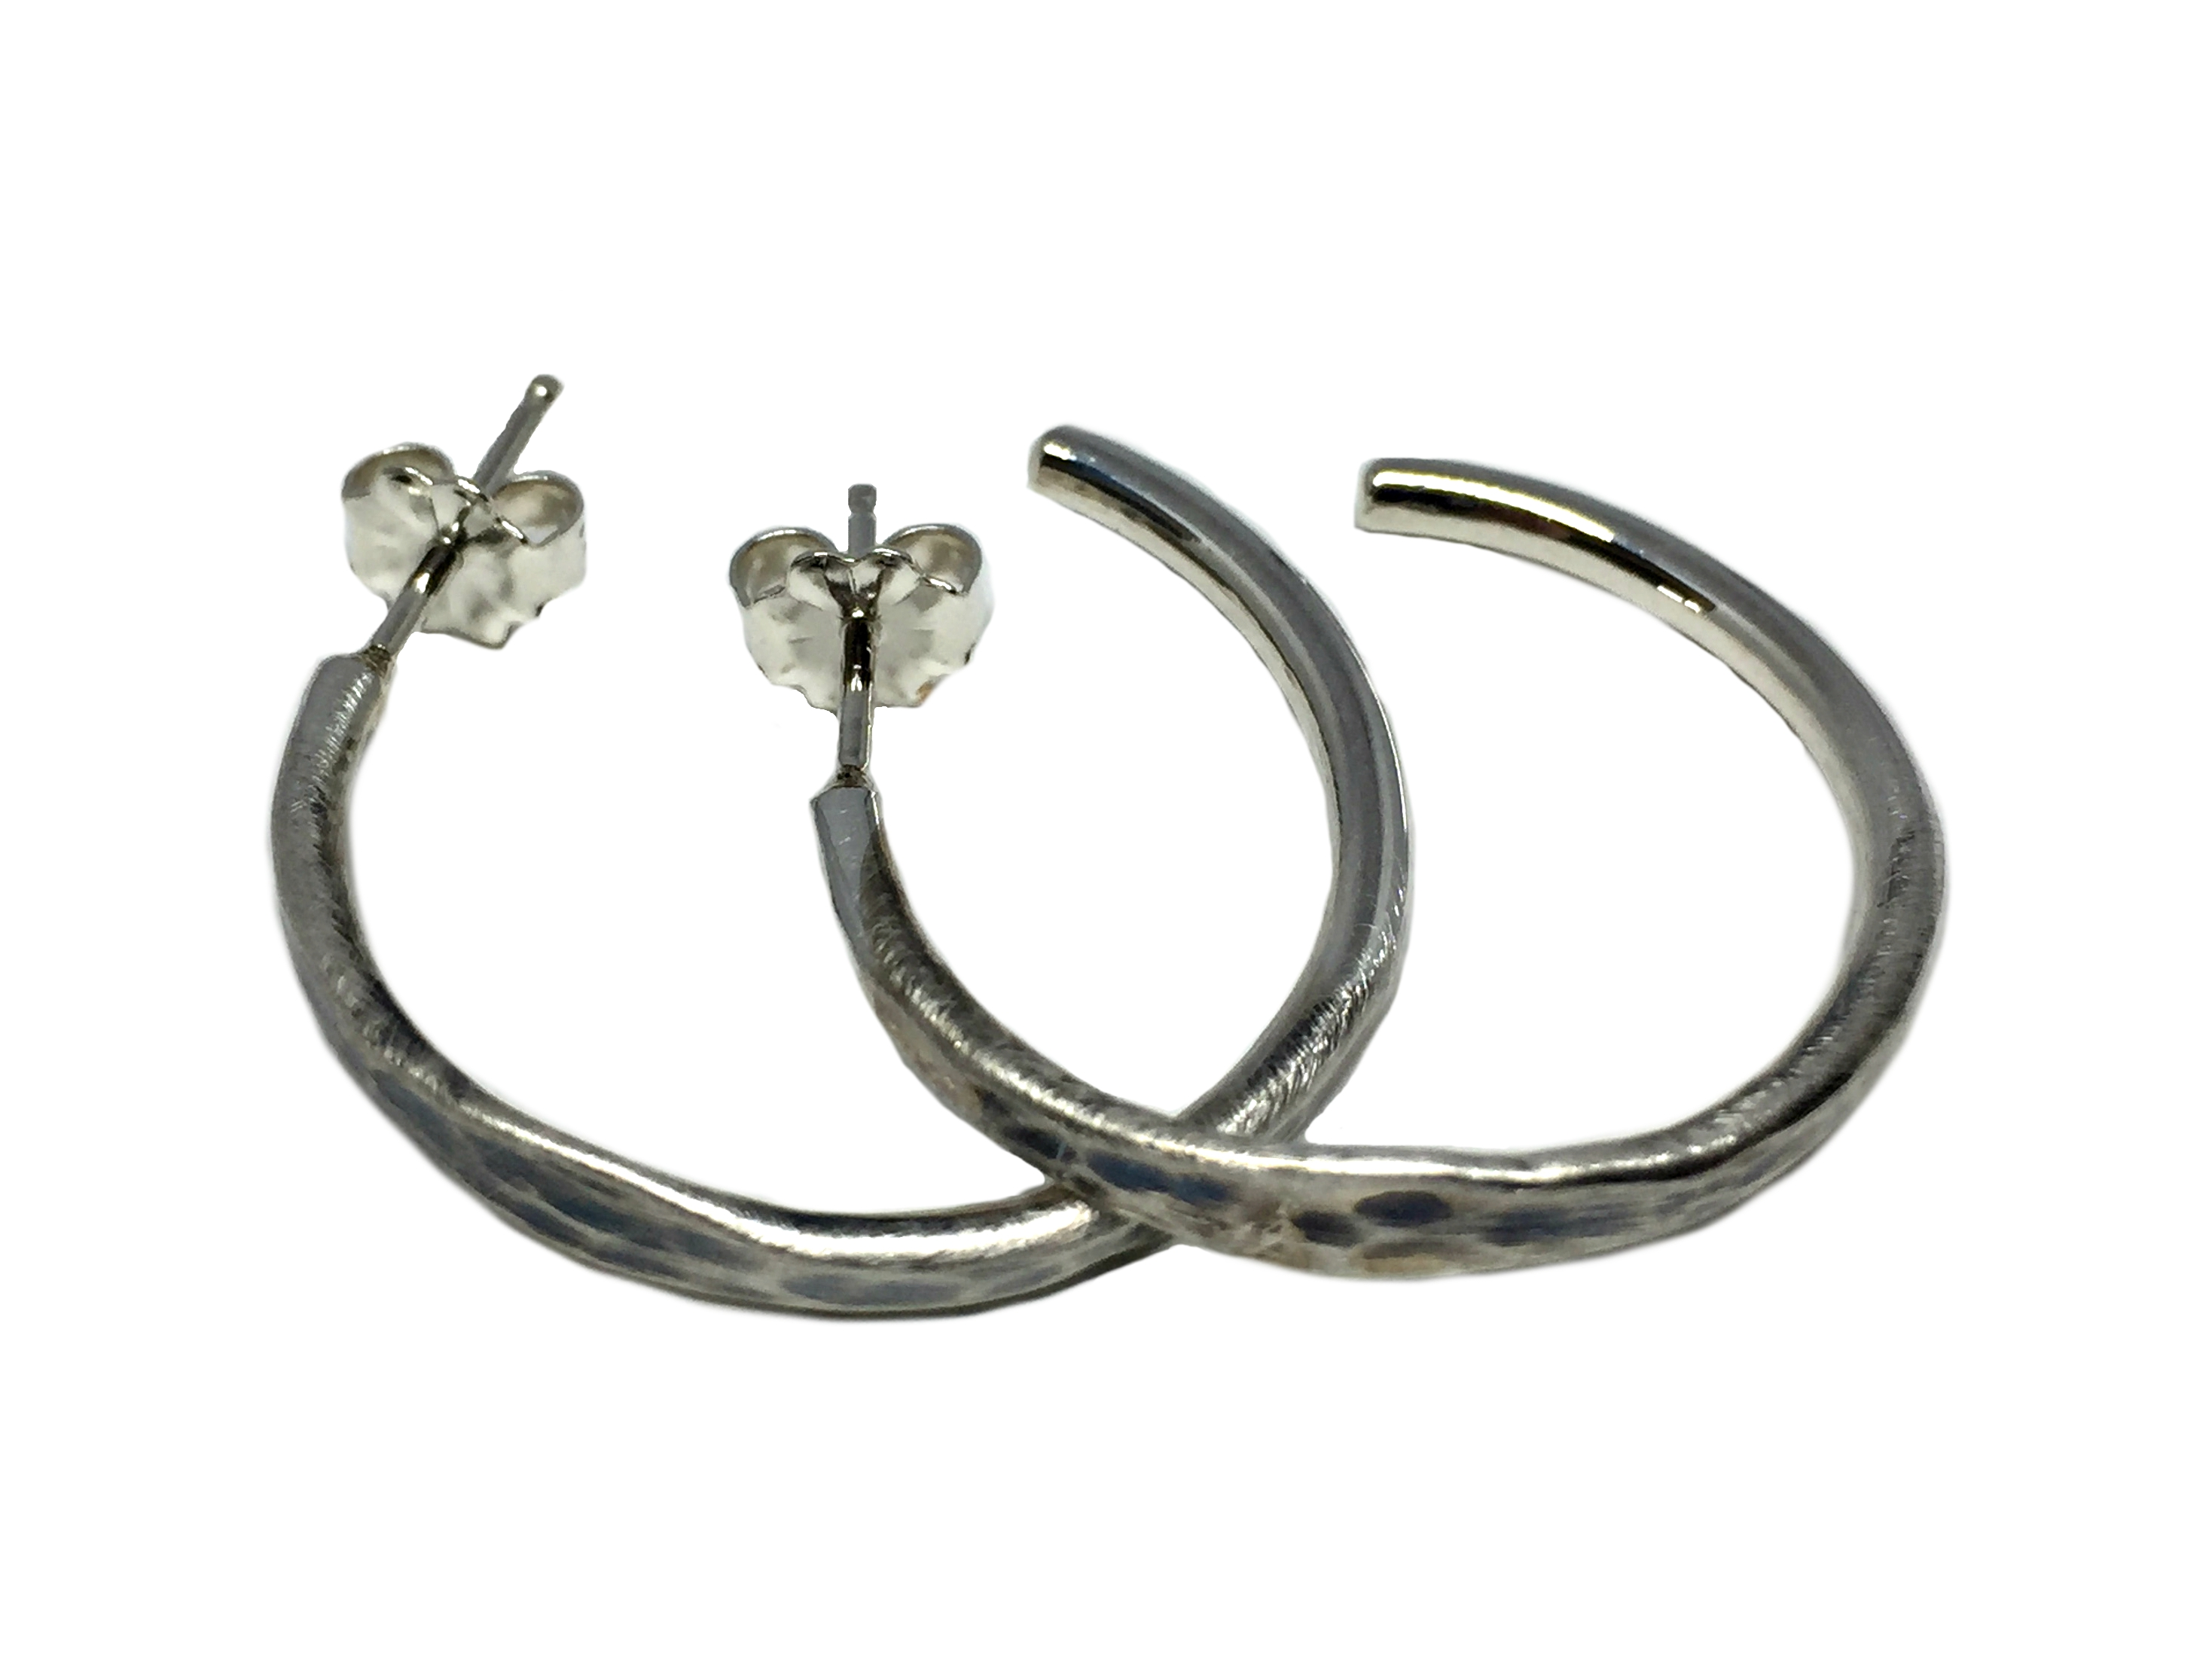 Small Sterling Silver Hammered Hoop Earrings by Karyn Chopik | Effusion Art Gallery + Cast Glass Studio, Invermere BC